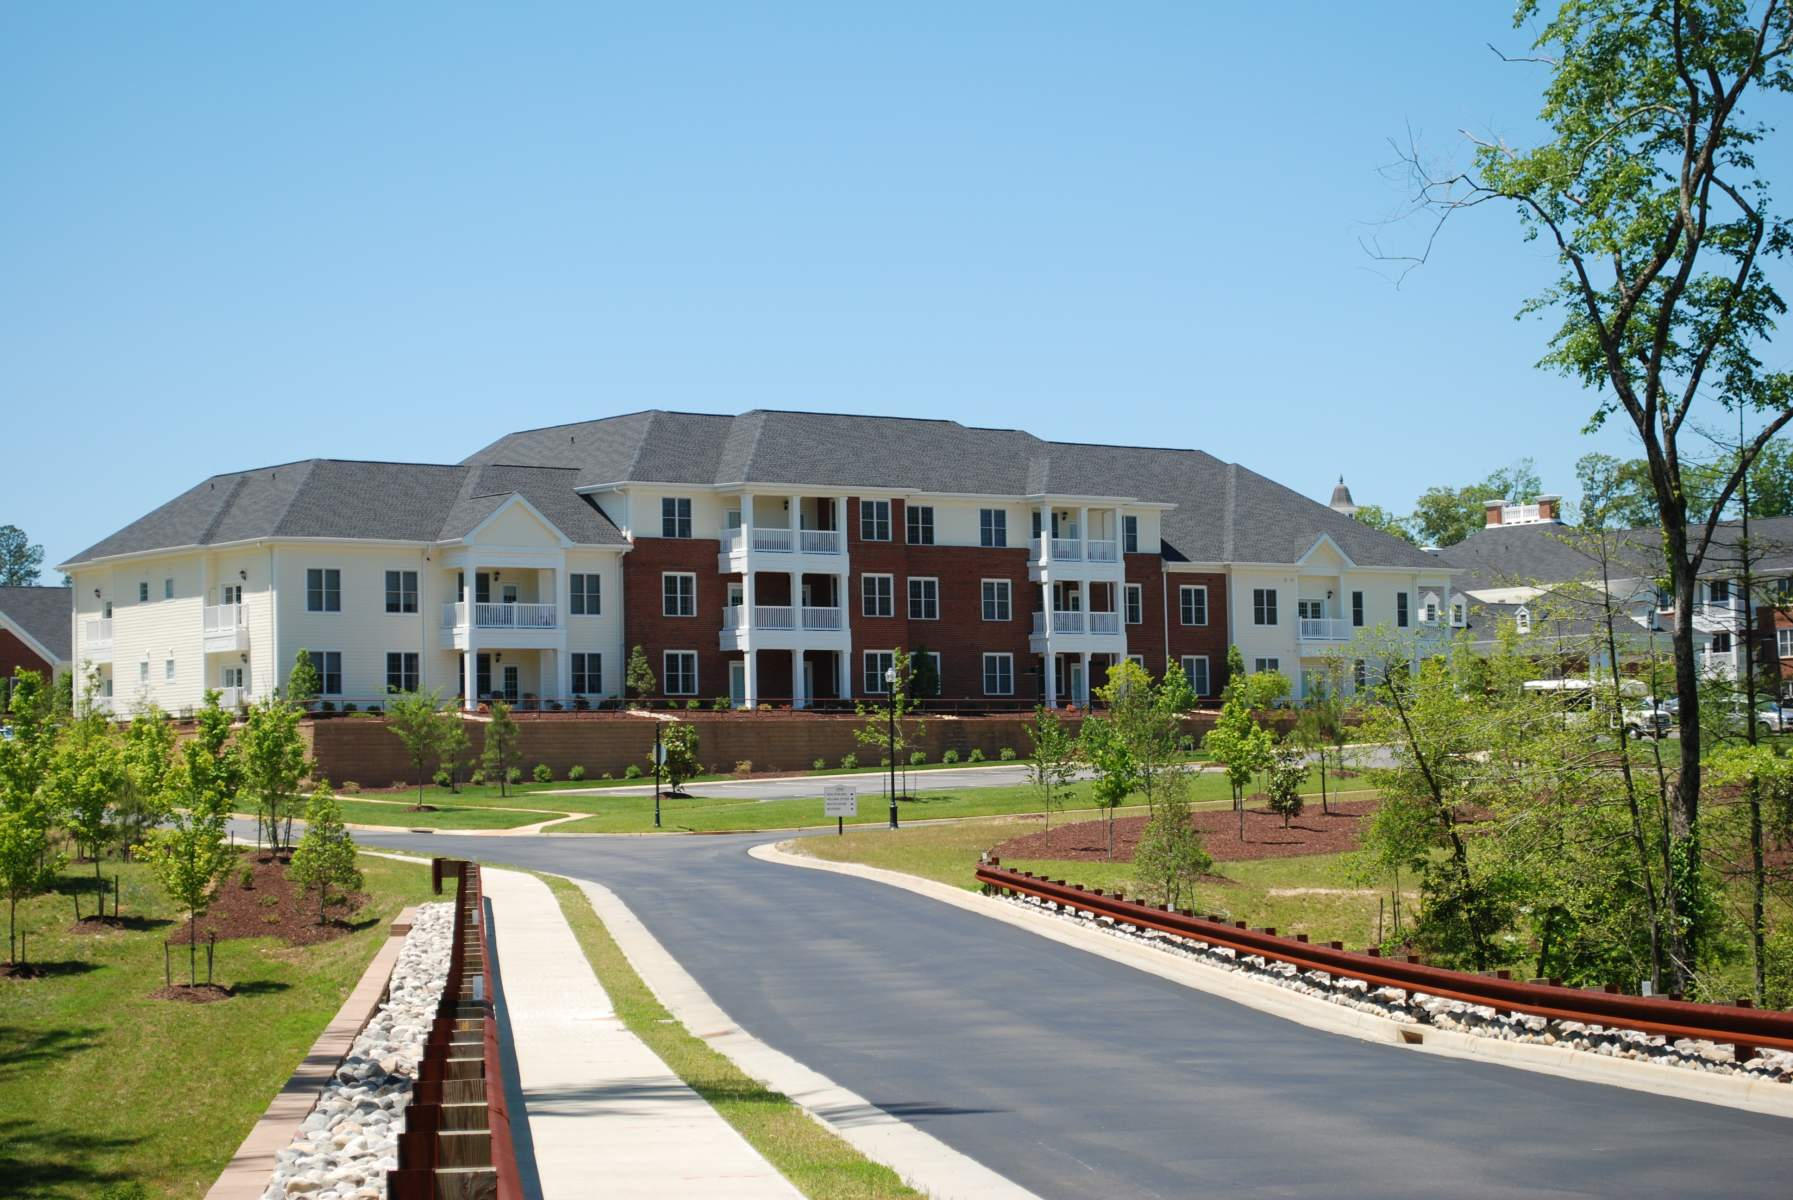 Windsormeade Continuing Care Retirement Community Clancy